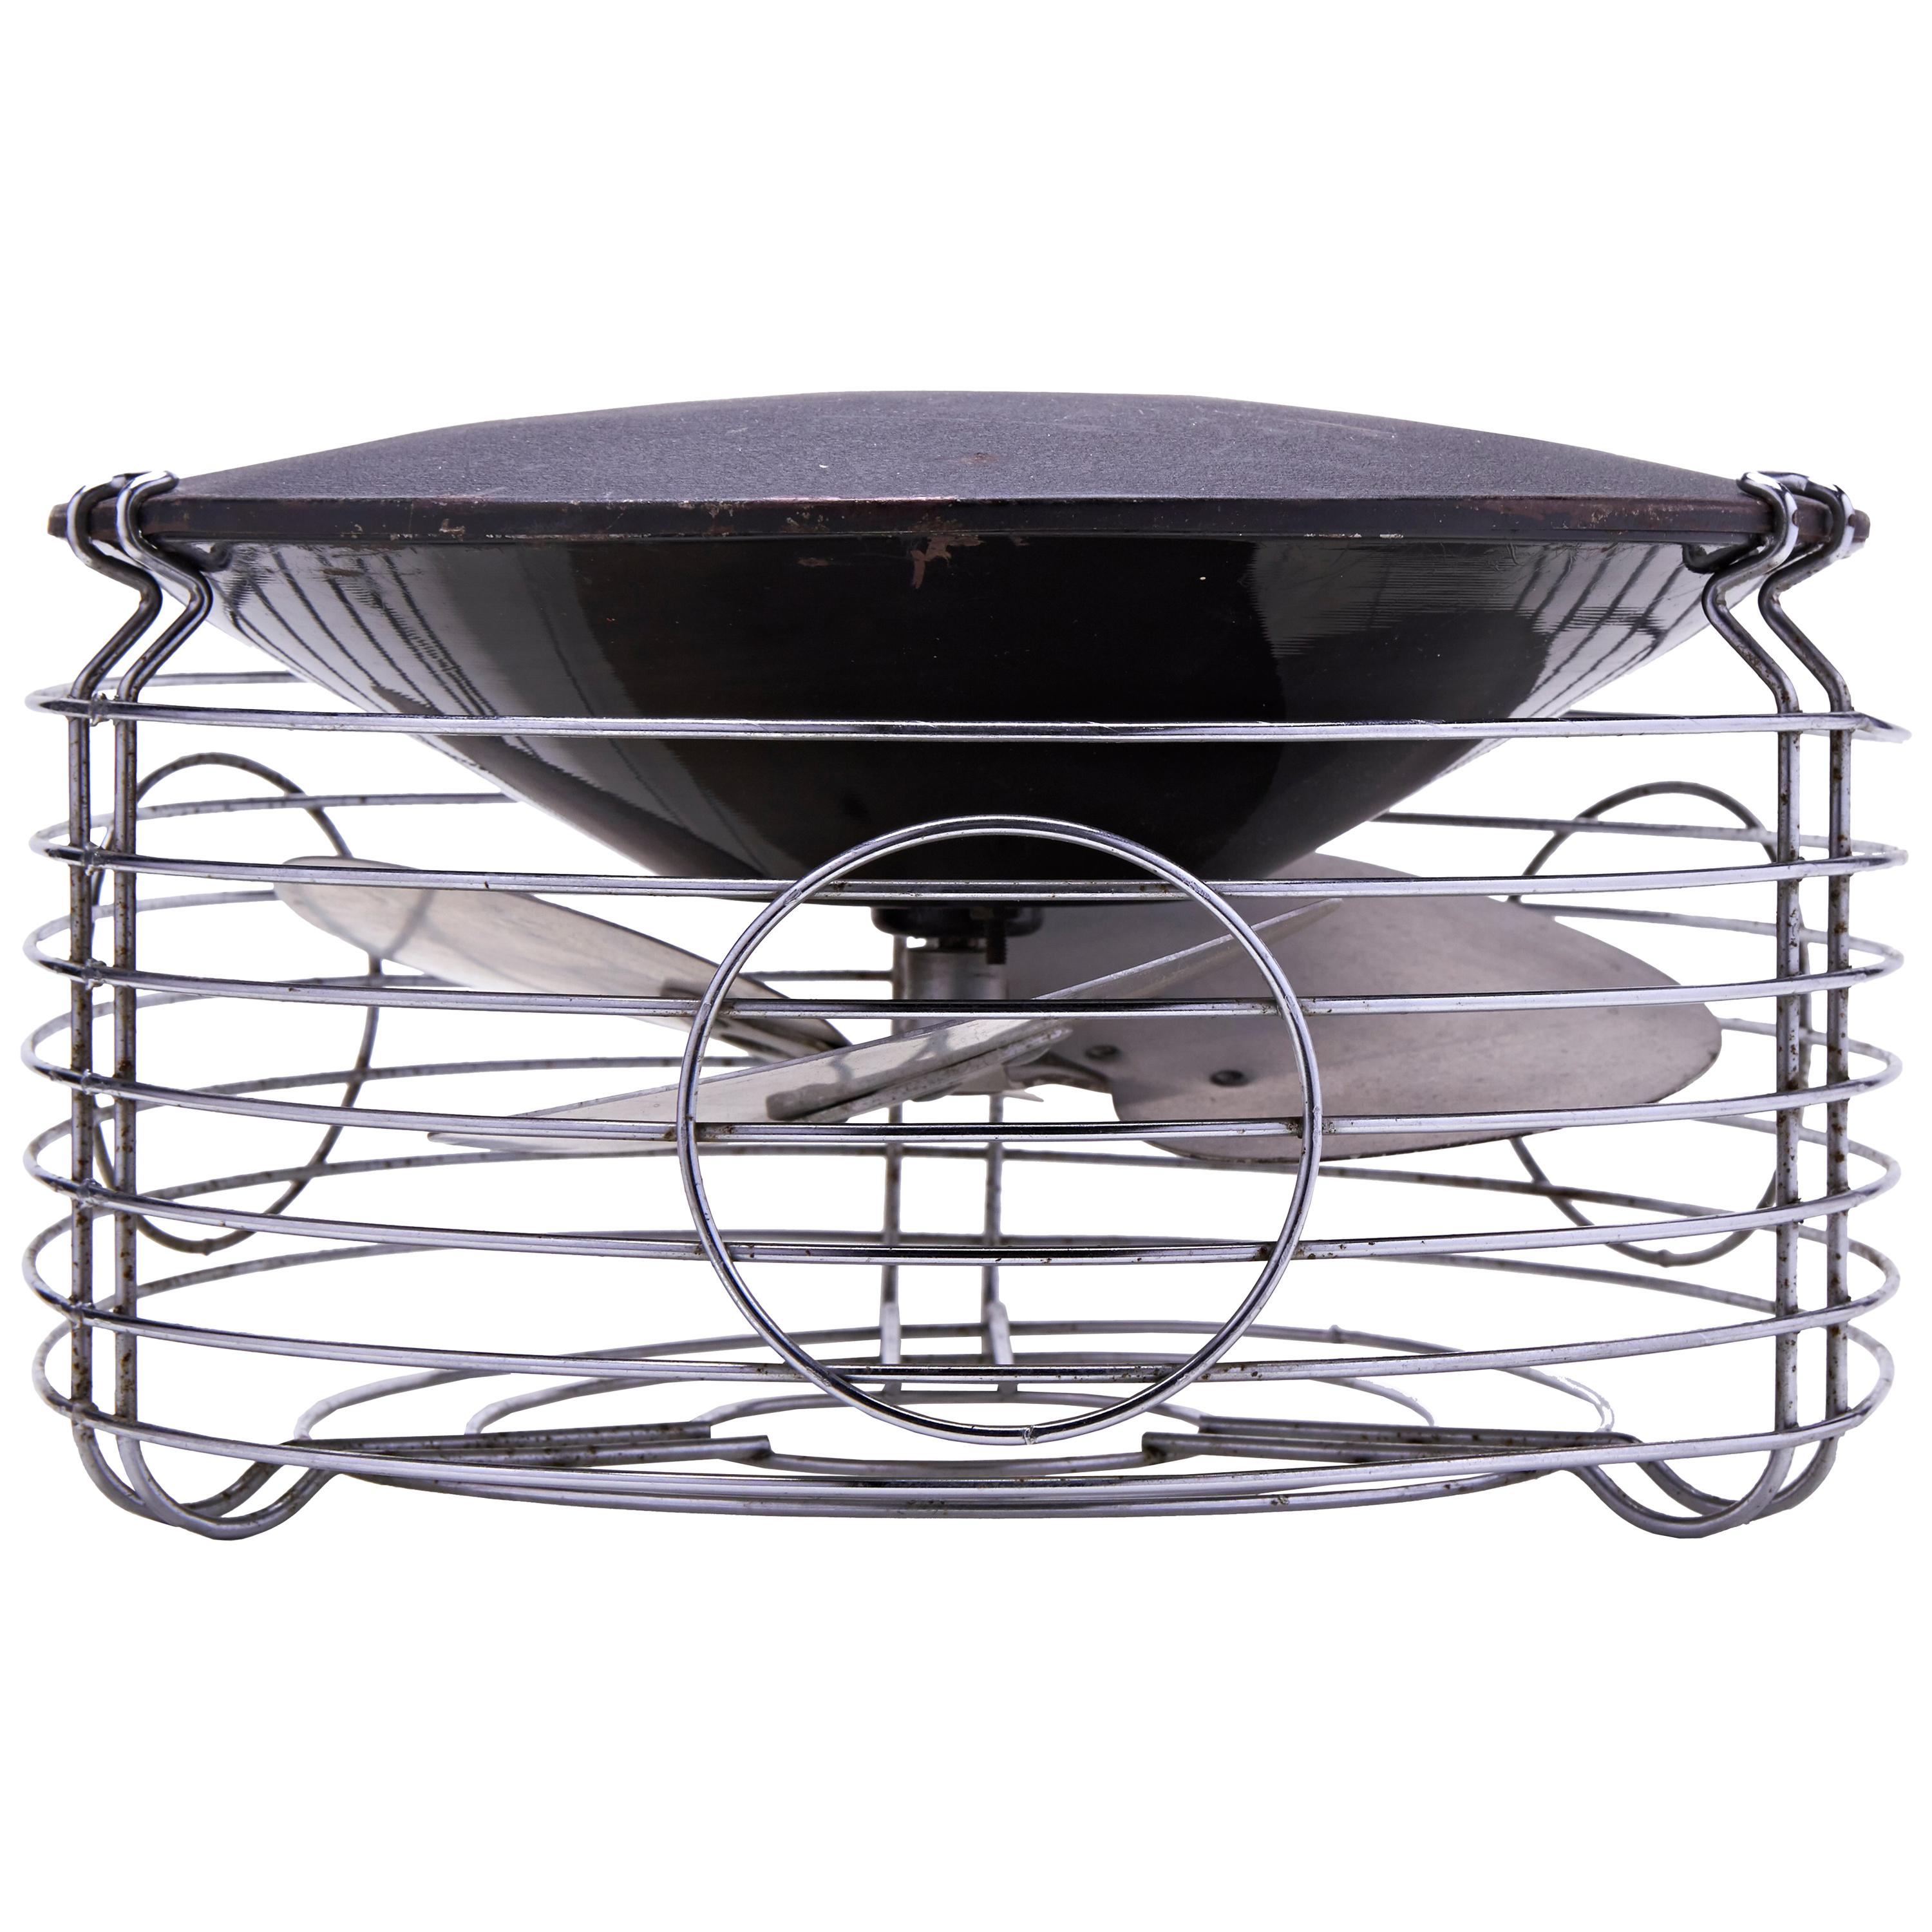 American Art Deco/Machine Age Chrome and Enamel Command-Air Lateral Floor Fan